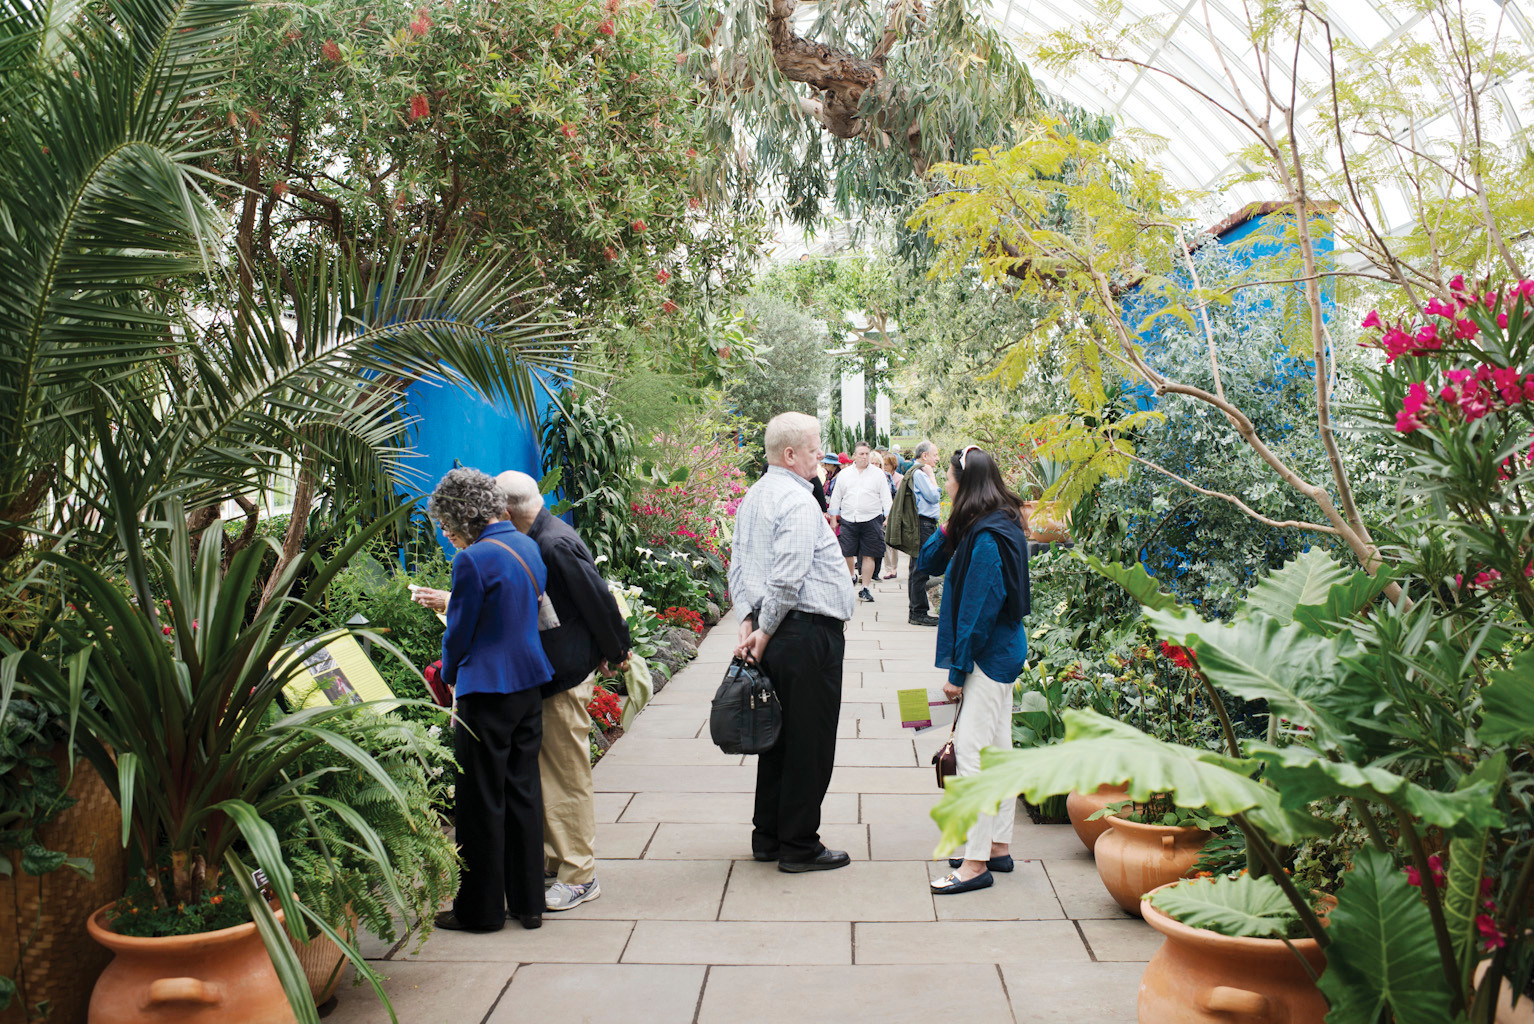 Members of the garden were given early access to the exhibit, and are seen here in the conservatory building.